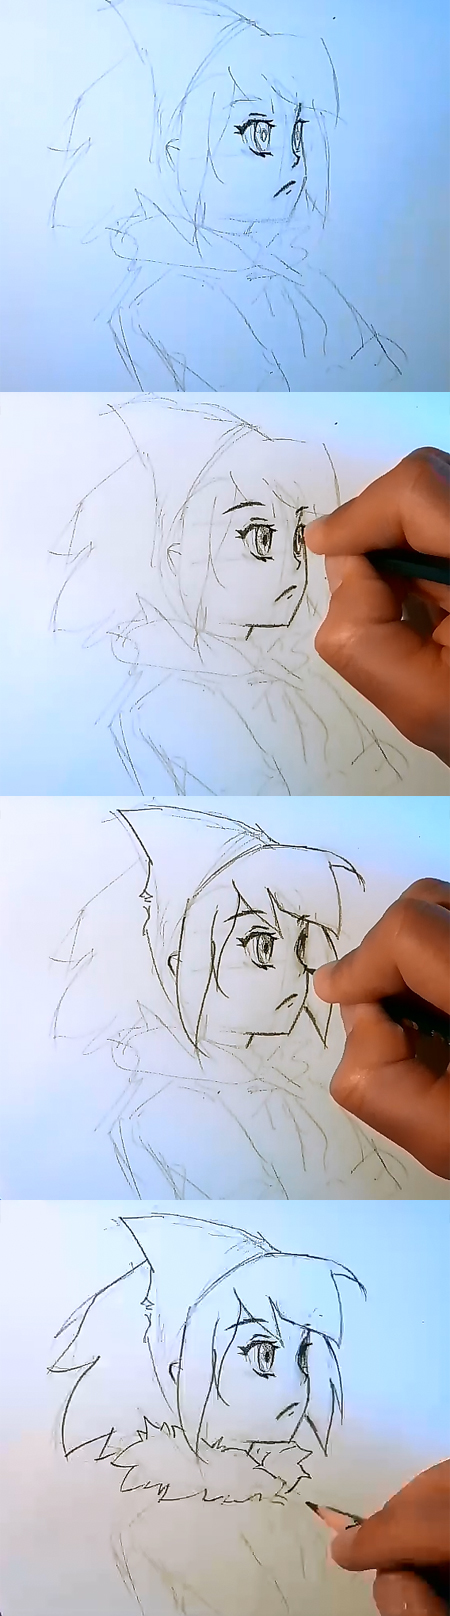 anime drawing lesson 02 How to draw Anime girl face side view